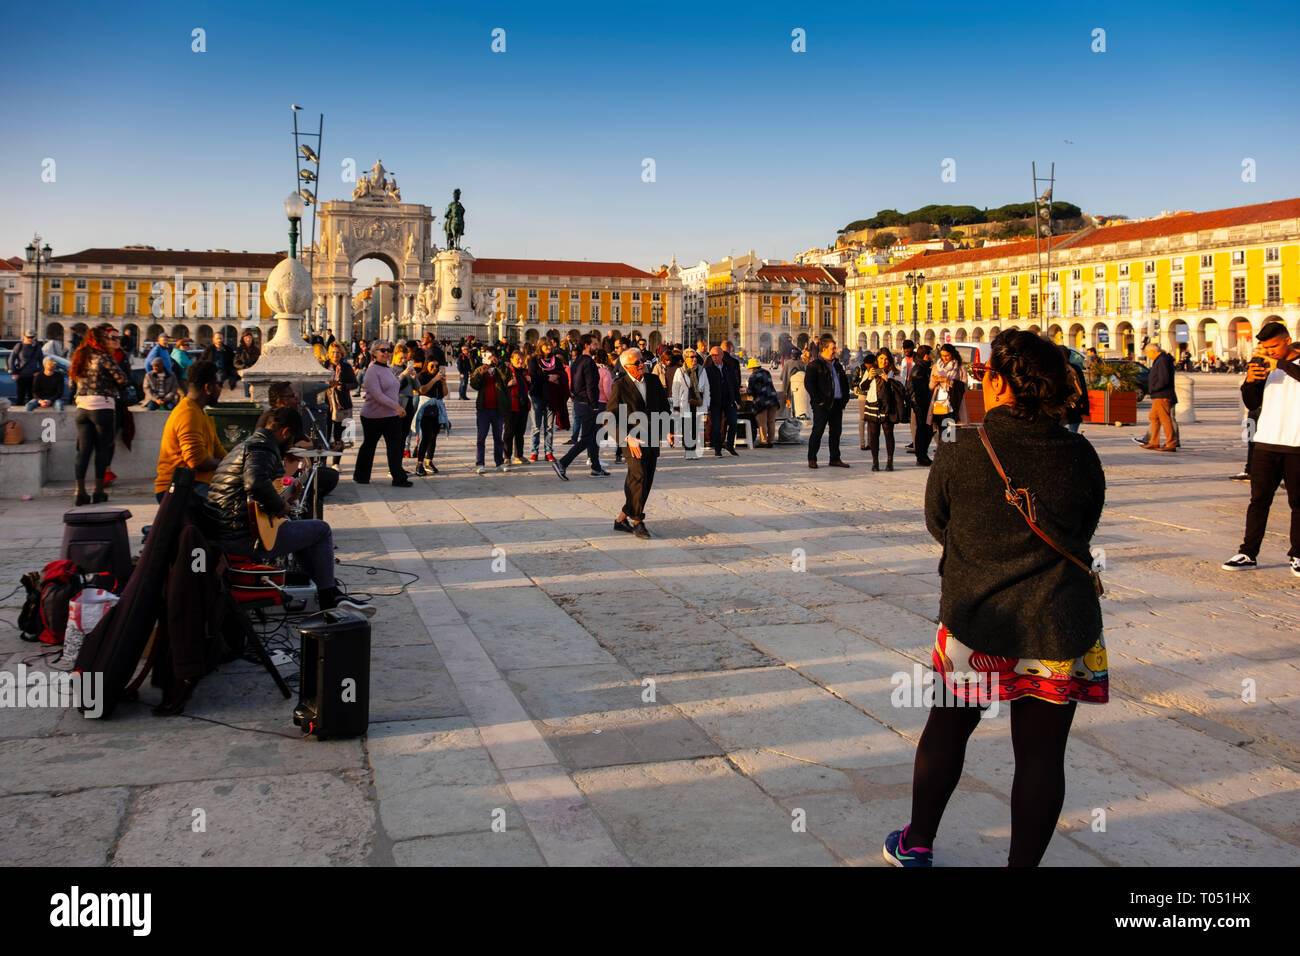 Triumphal Arch of Rua Augusta at dusk, Commerce Square. Lisbon, Portugal. Europe - Stock Image